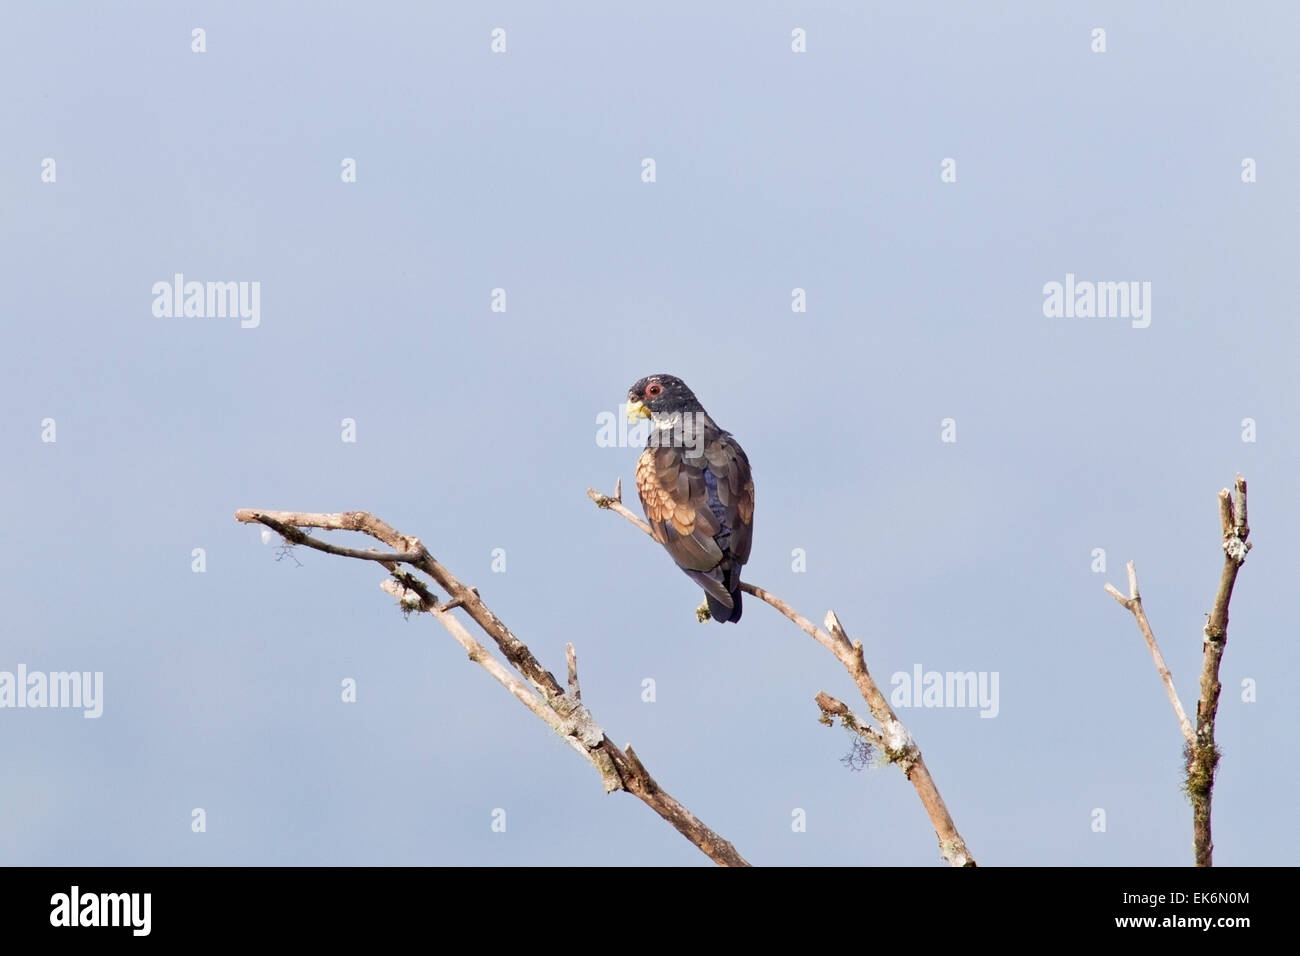 Bronze-winged Parrot (Pionus chalcopterus) adult perched in dead tree, Ecuador, central America - Stock Image